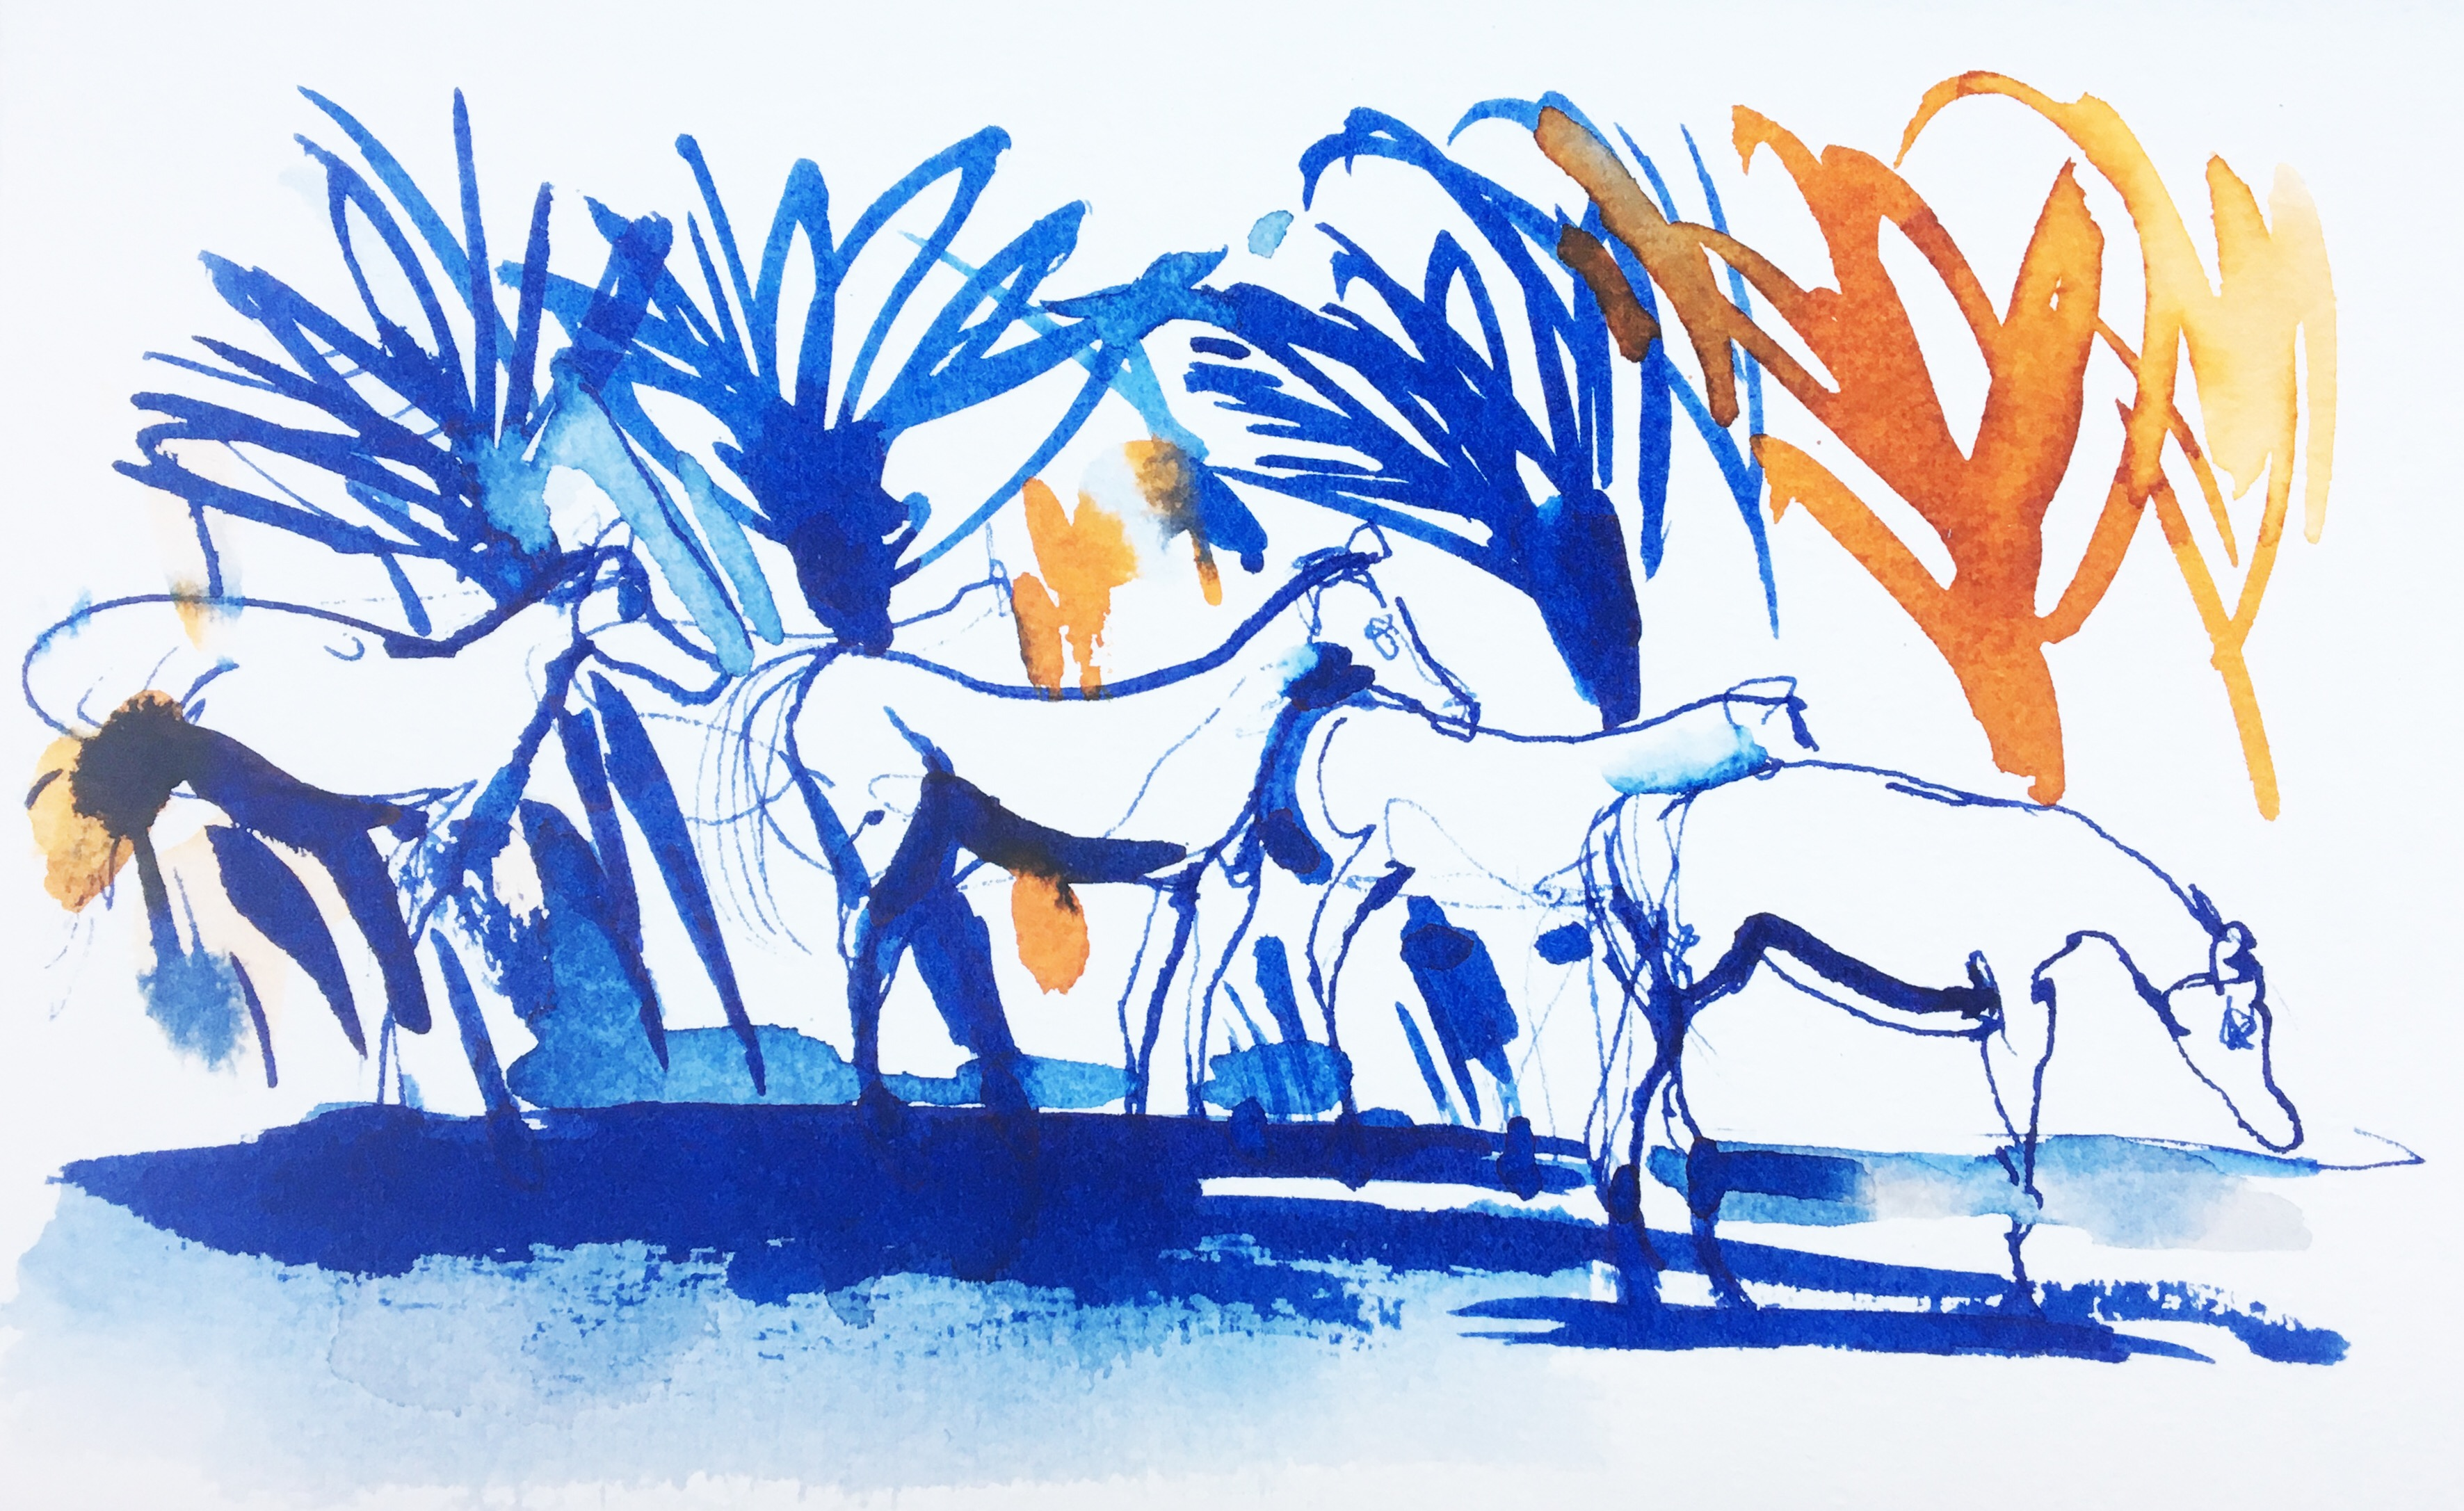 Watercolor and ink illustration, horses